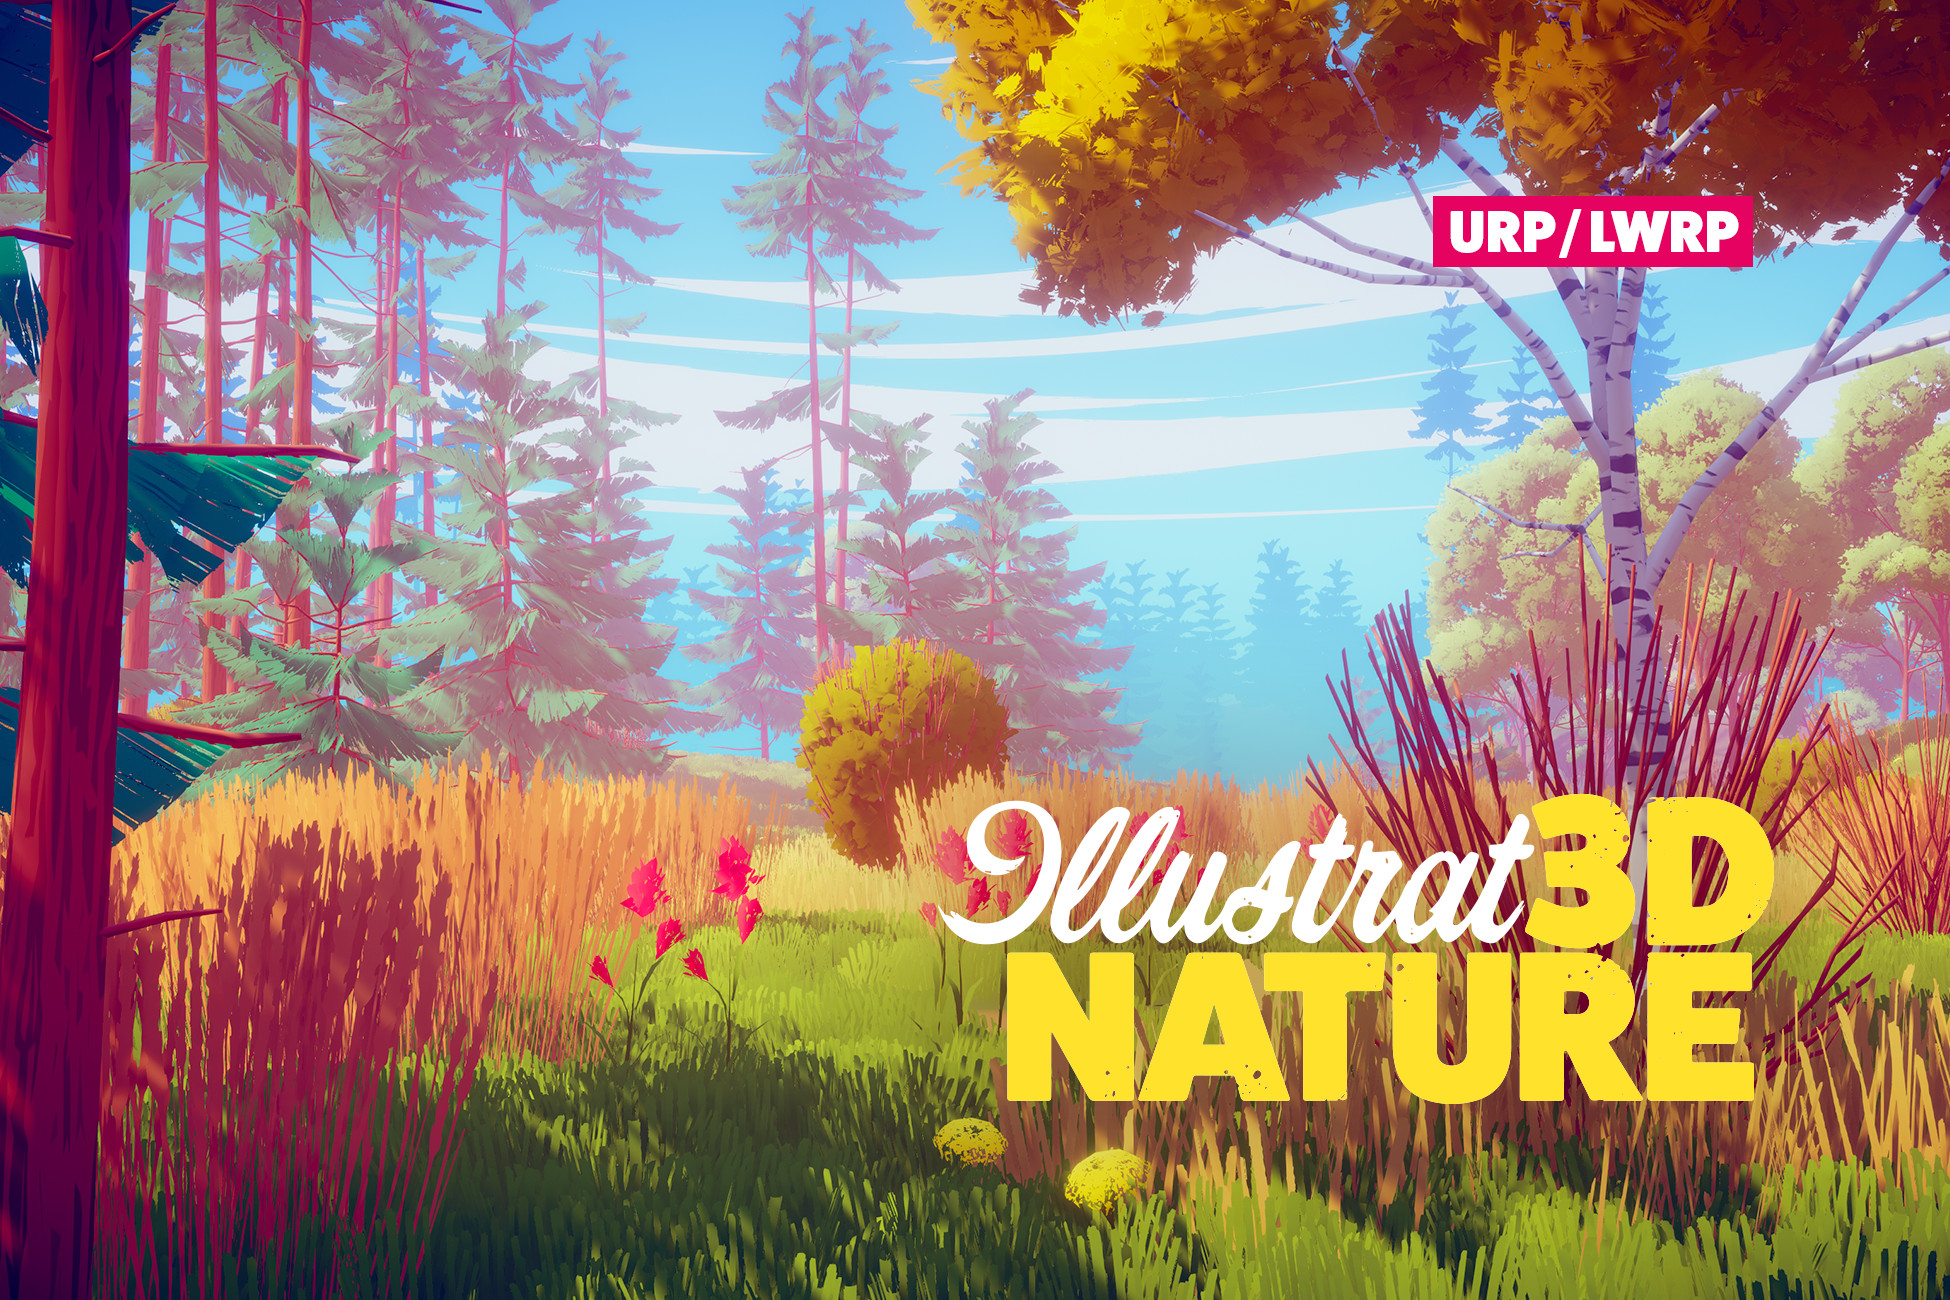 The Illustrated Nature